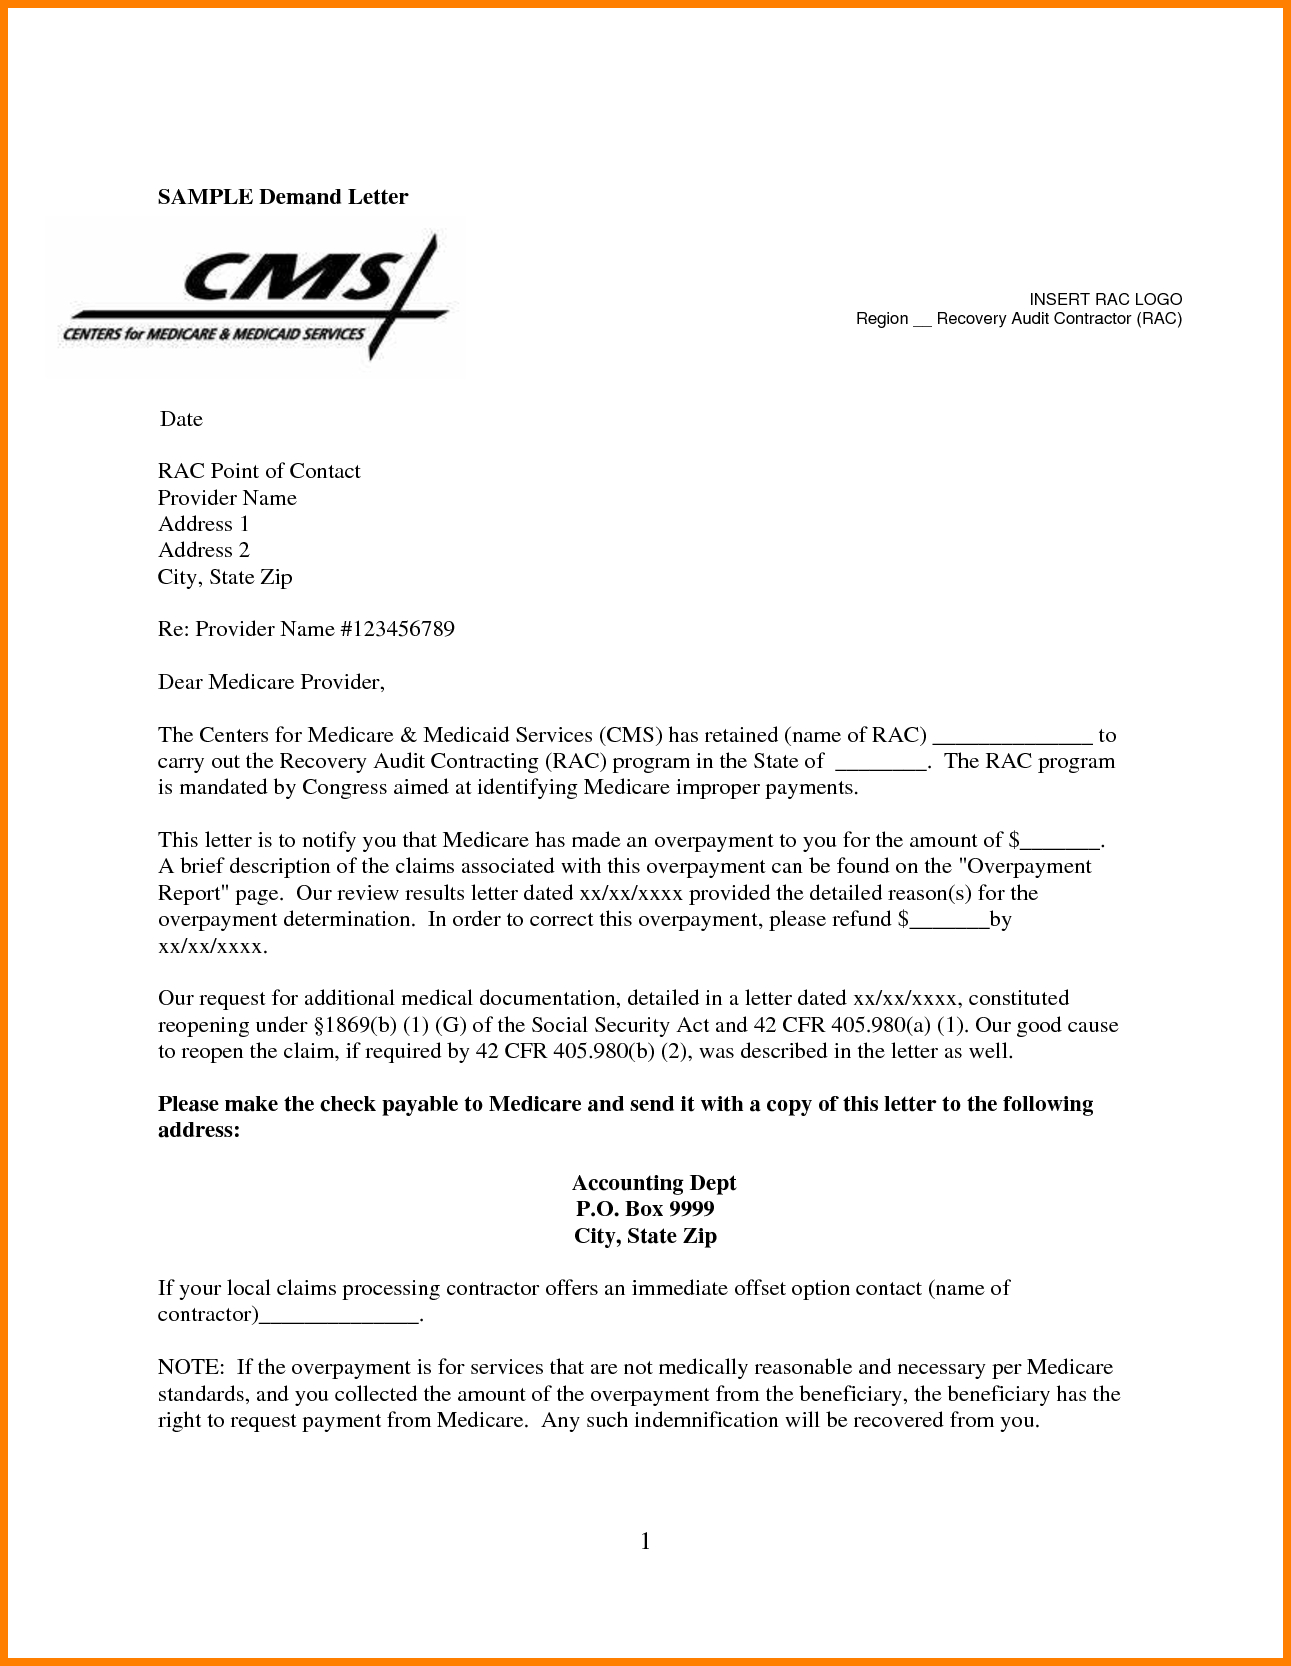 Subrogation Demand Letter Template - Sample Demand Letter From attorney